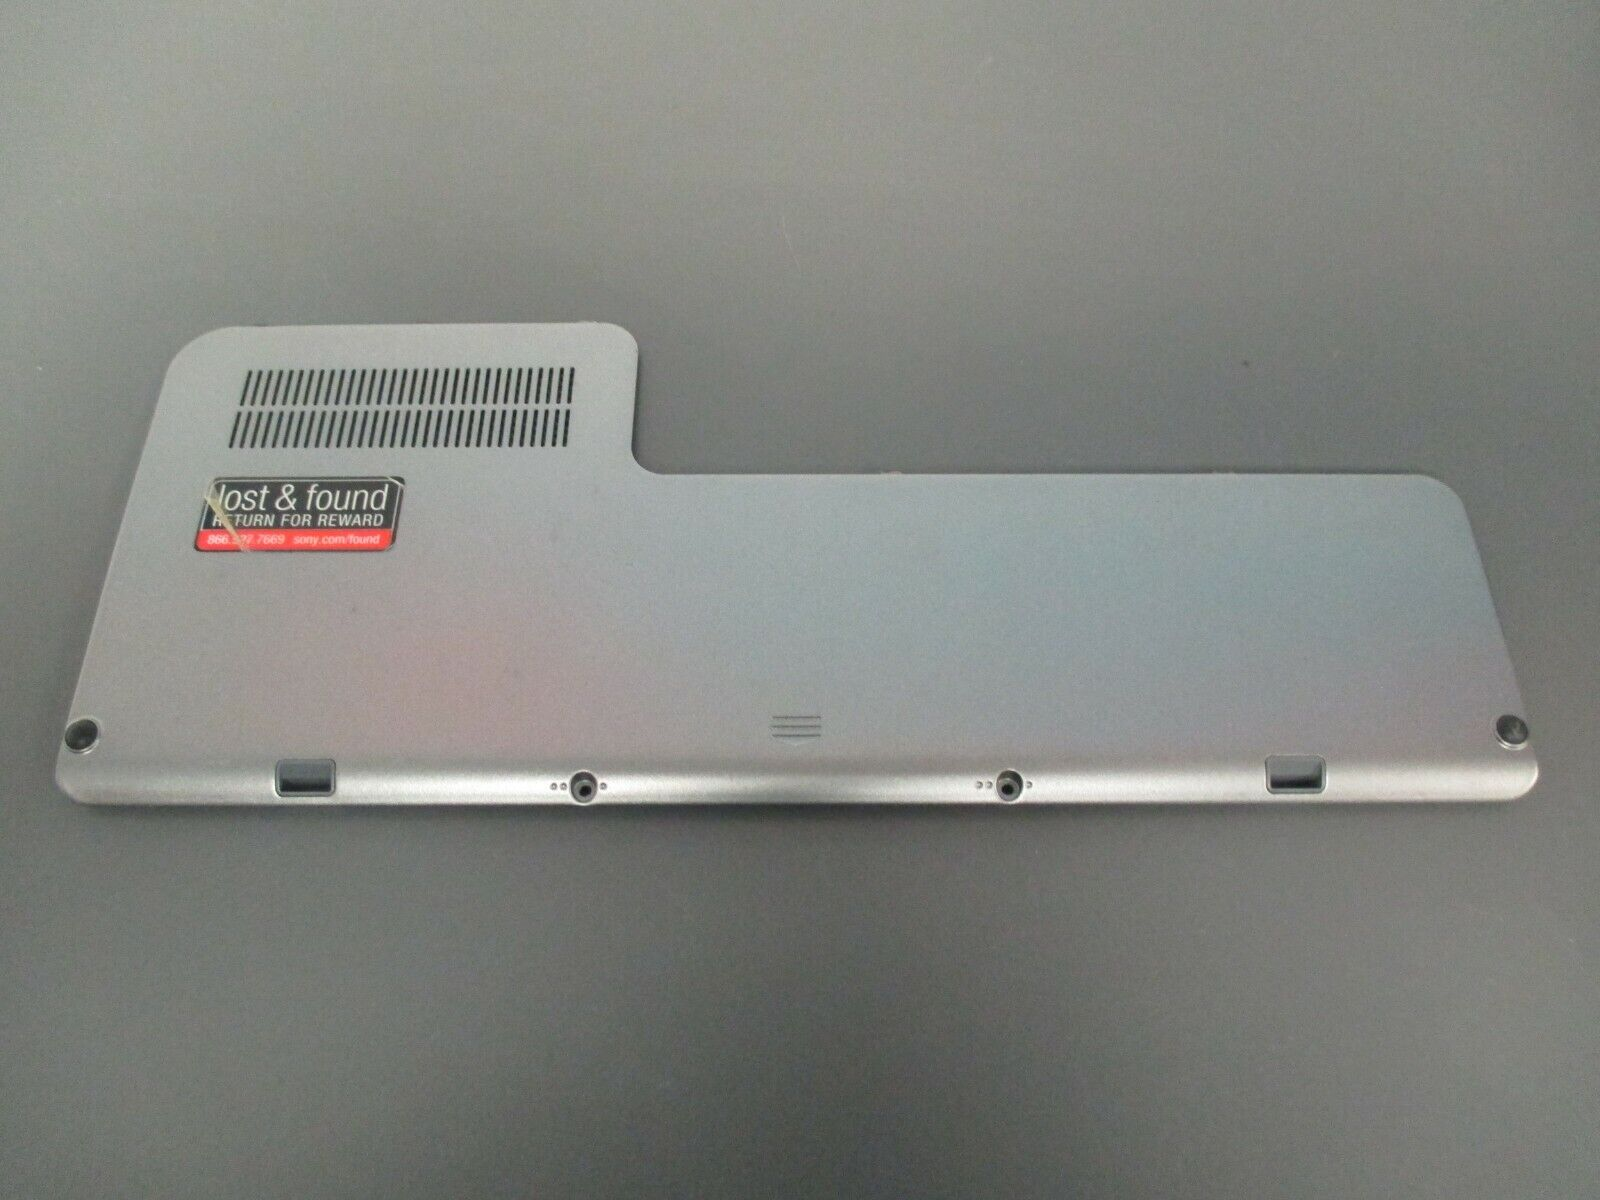 Sony Vaio VPCA3AFX Grey Back Panel 024-600A-8518-B USED